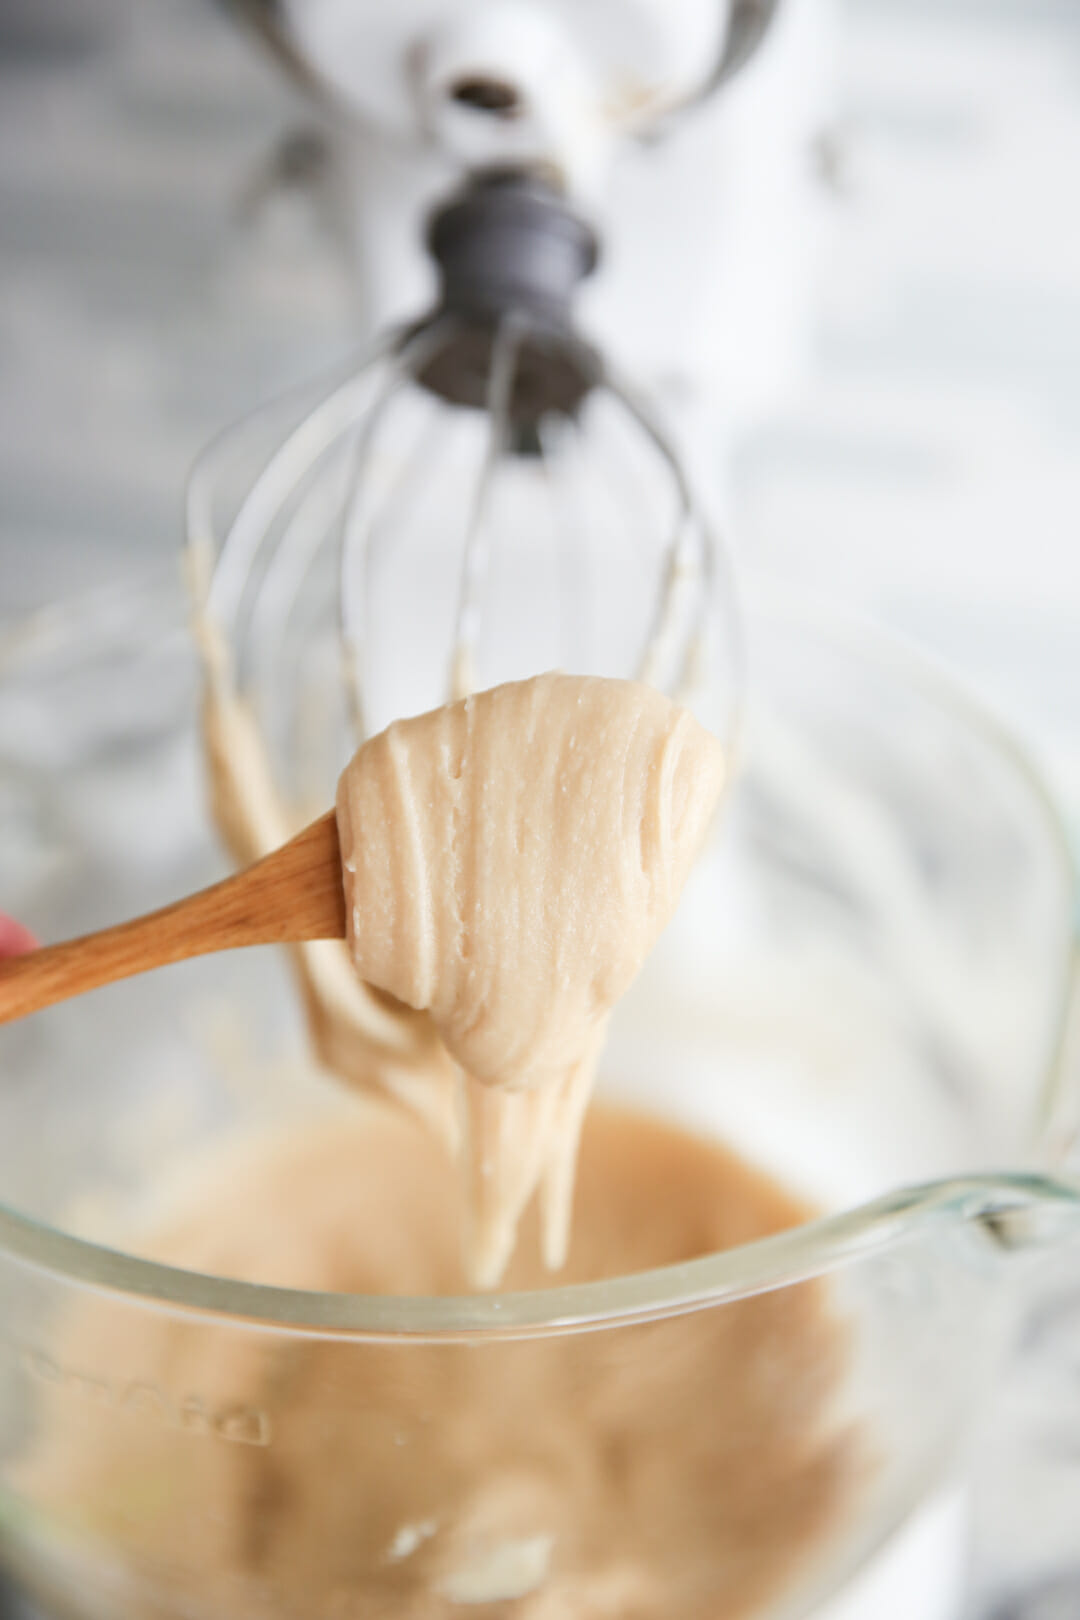 How To Make Homemade Cake Frosting Without Powdered Sugar